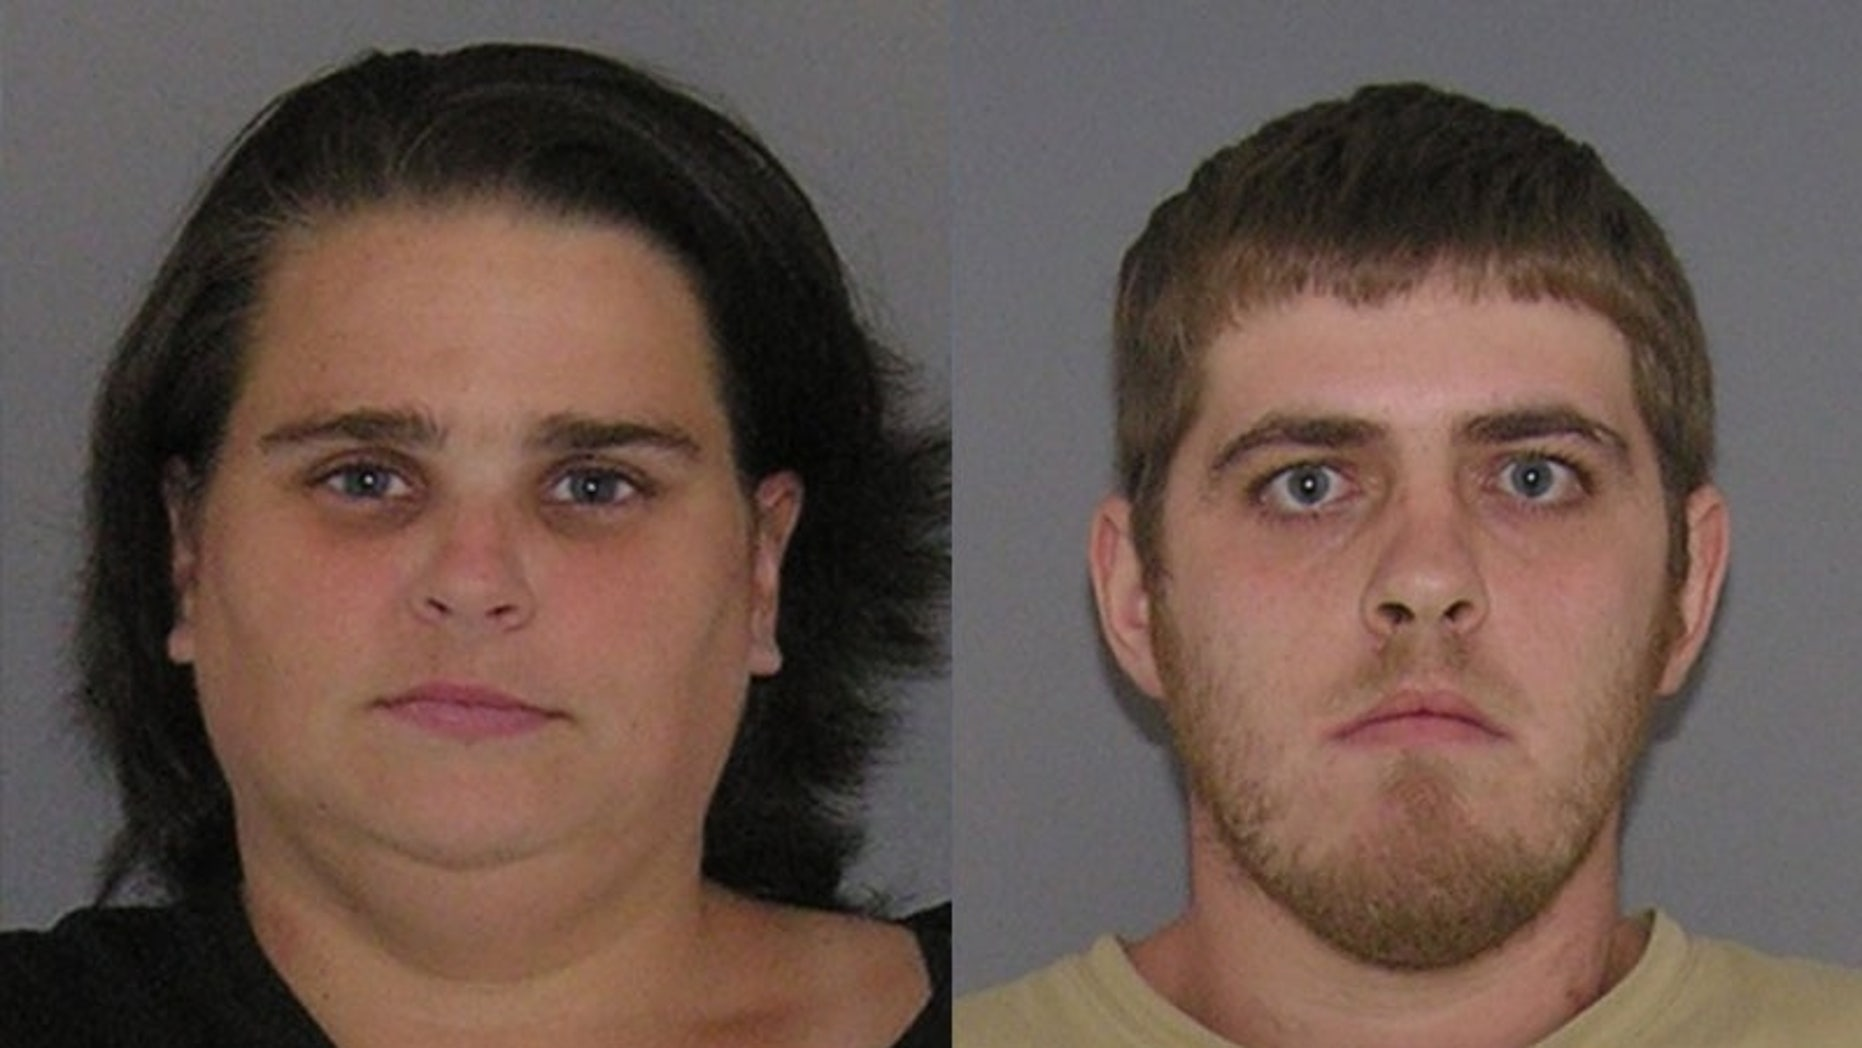 Jamie Carver (left) and James Howell (right) were arrested for allegedly binding and gagging twin boys in their apartment.